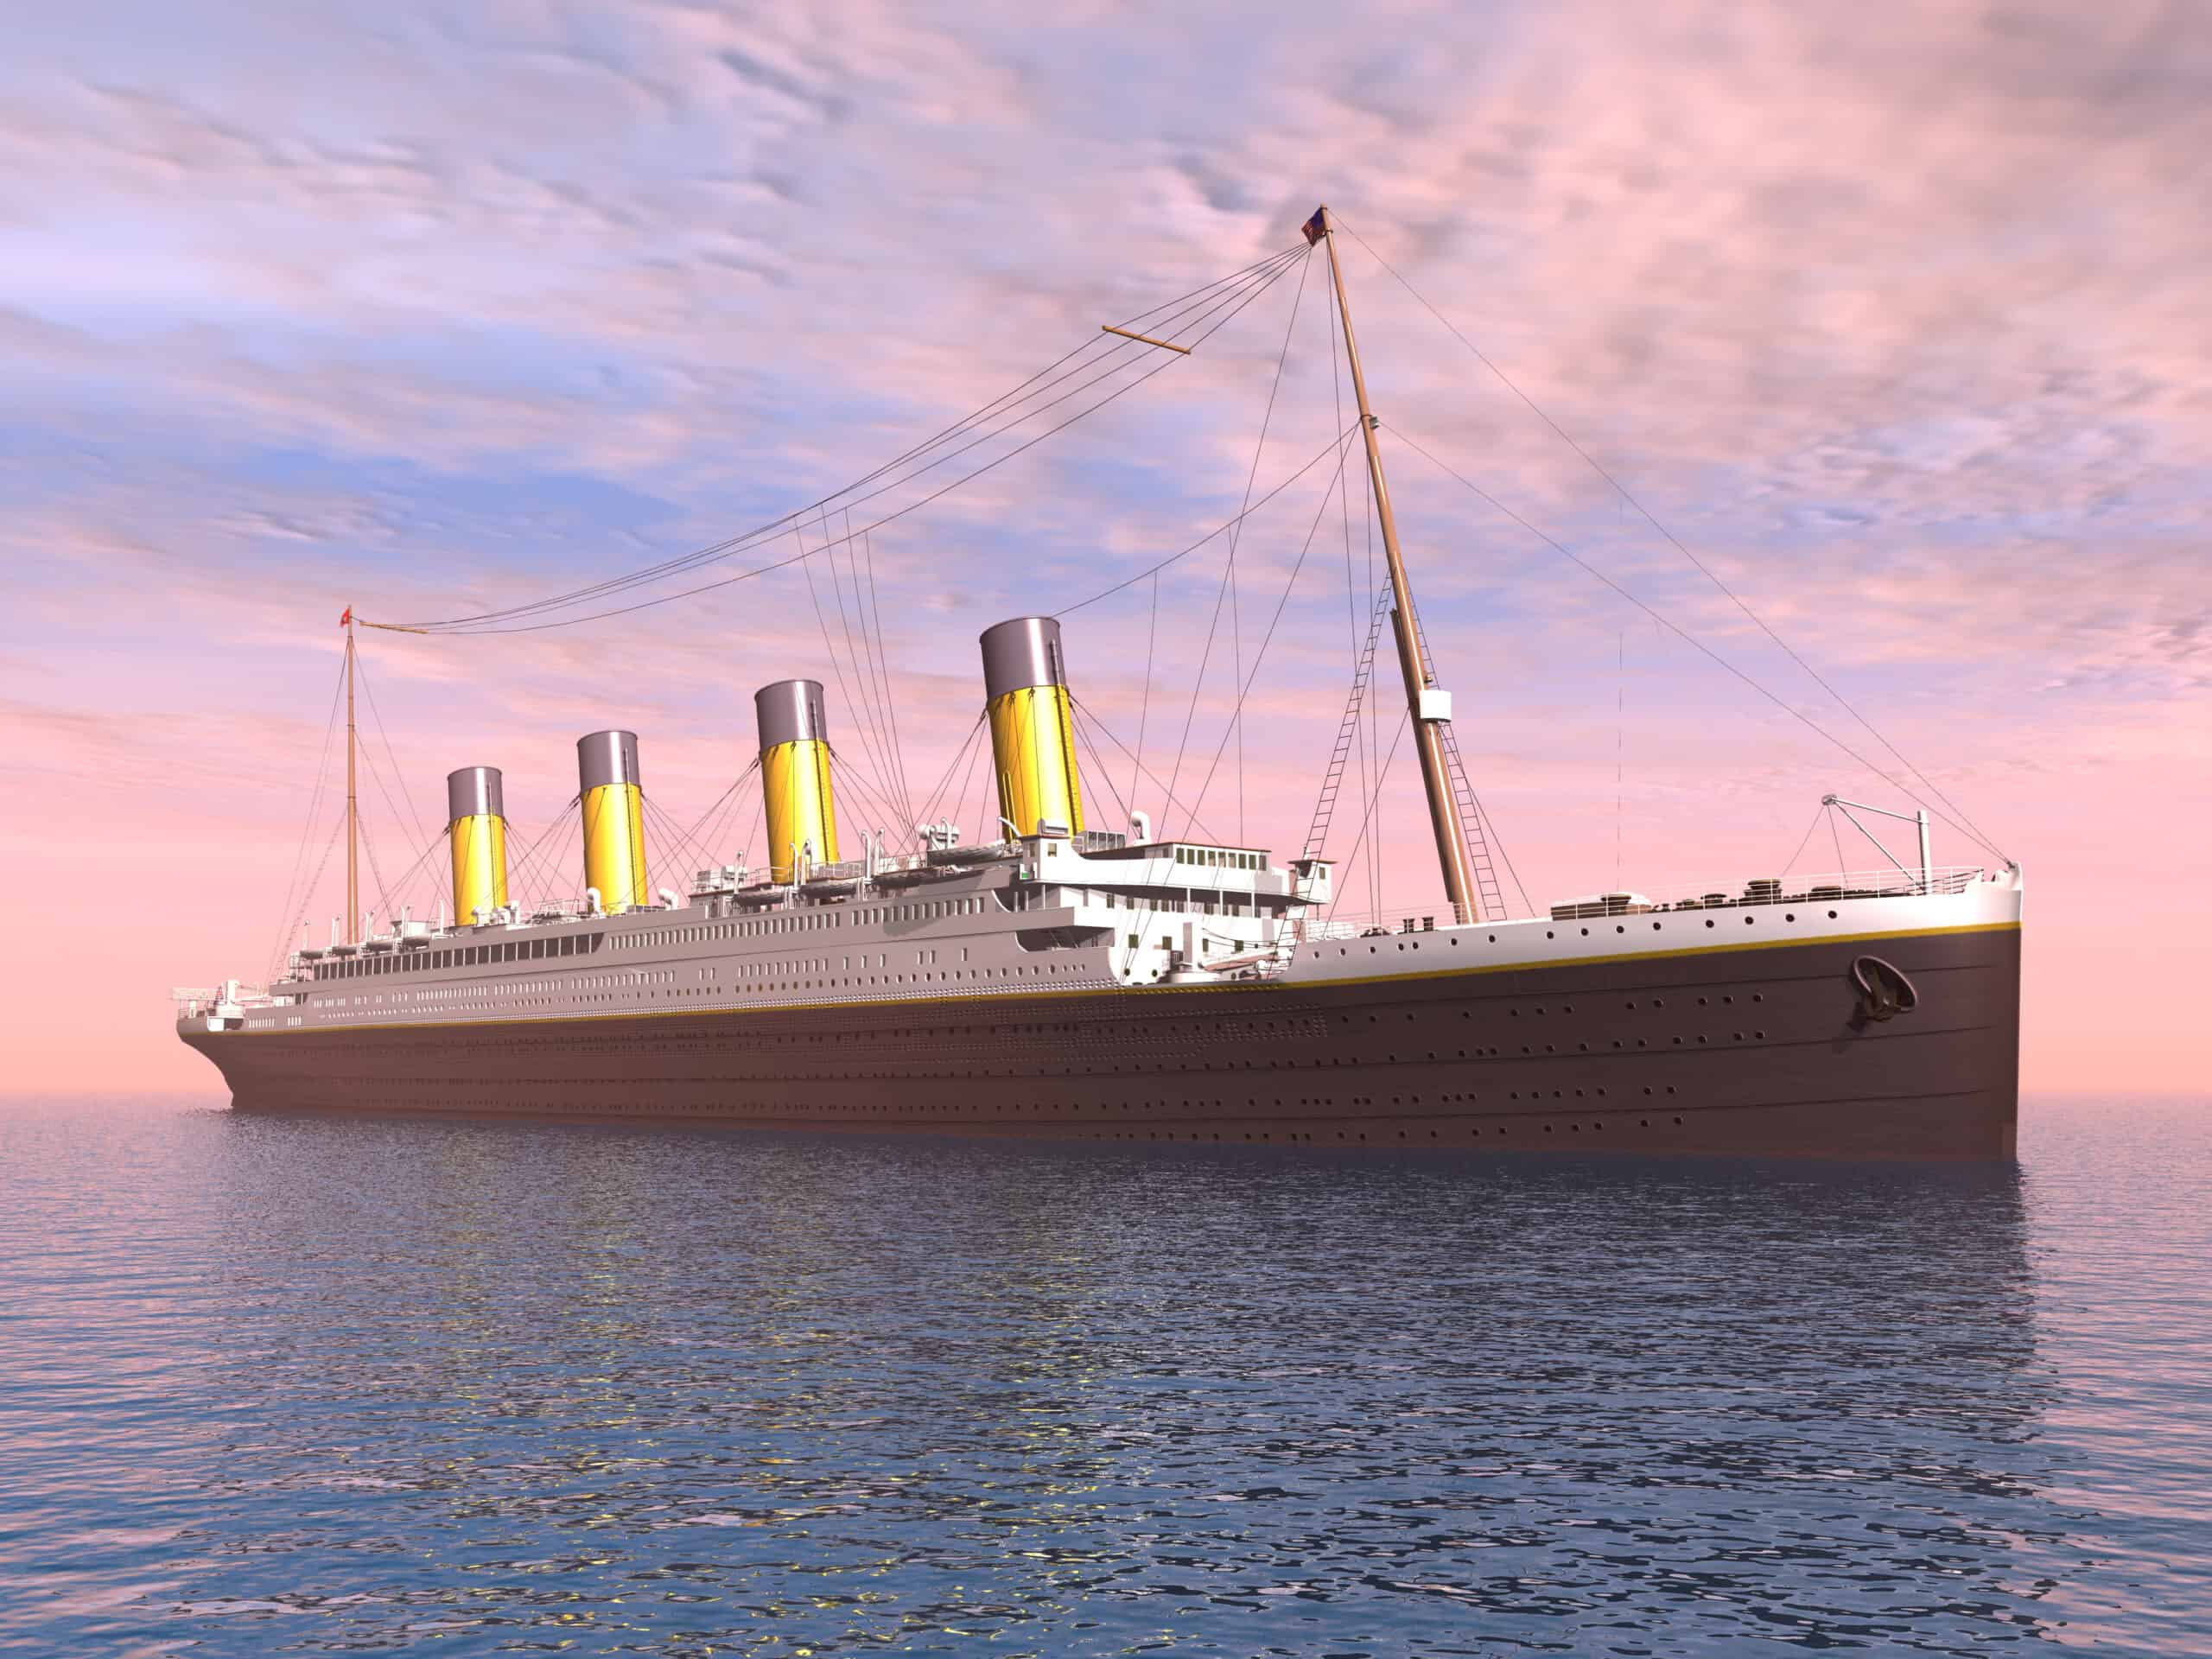 Computer generated 3D illustration from the Titanic